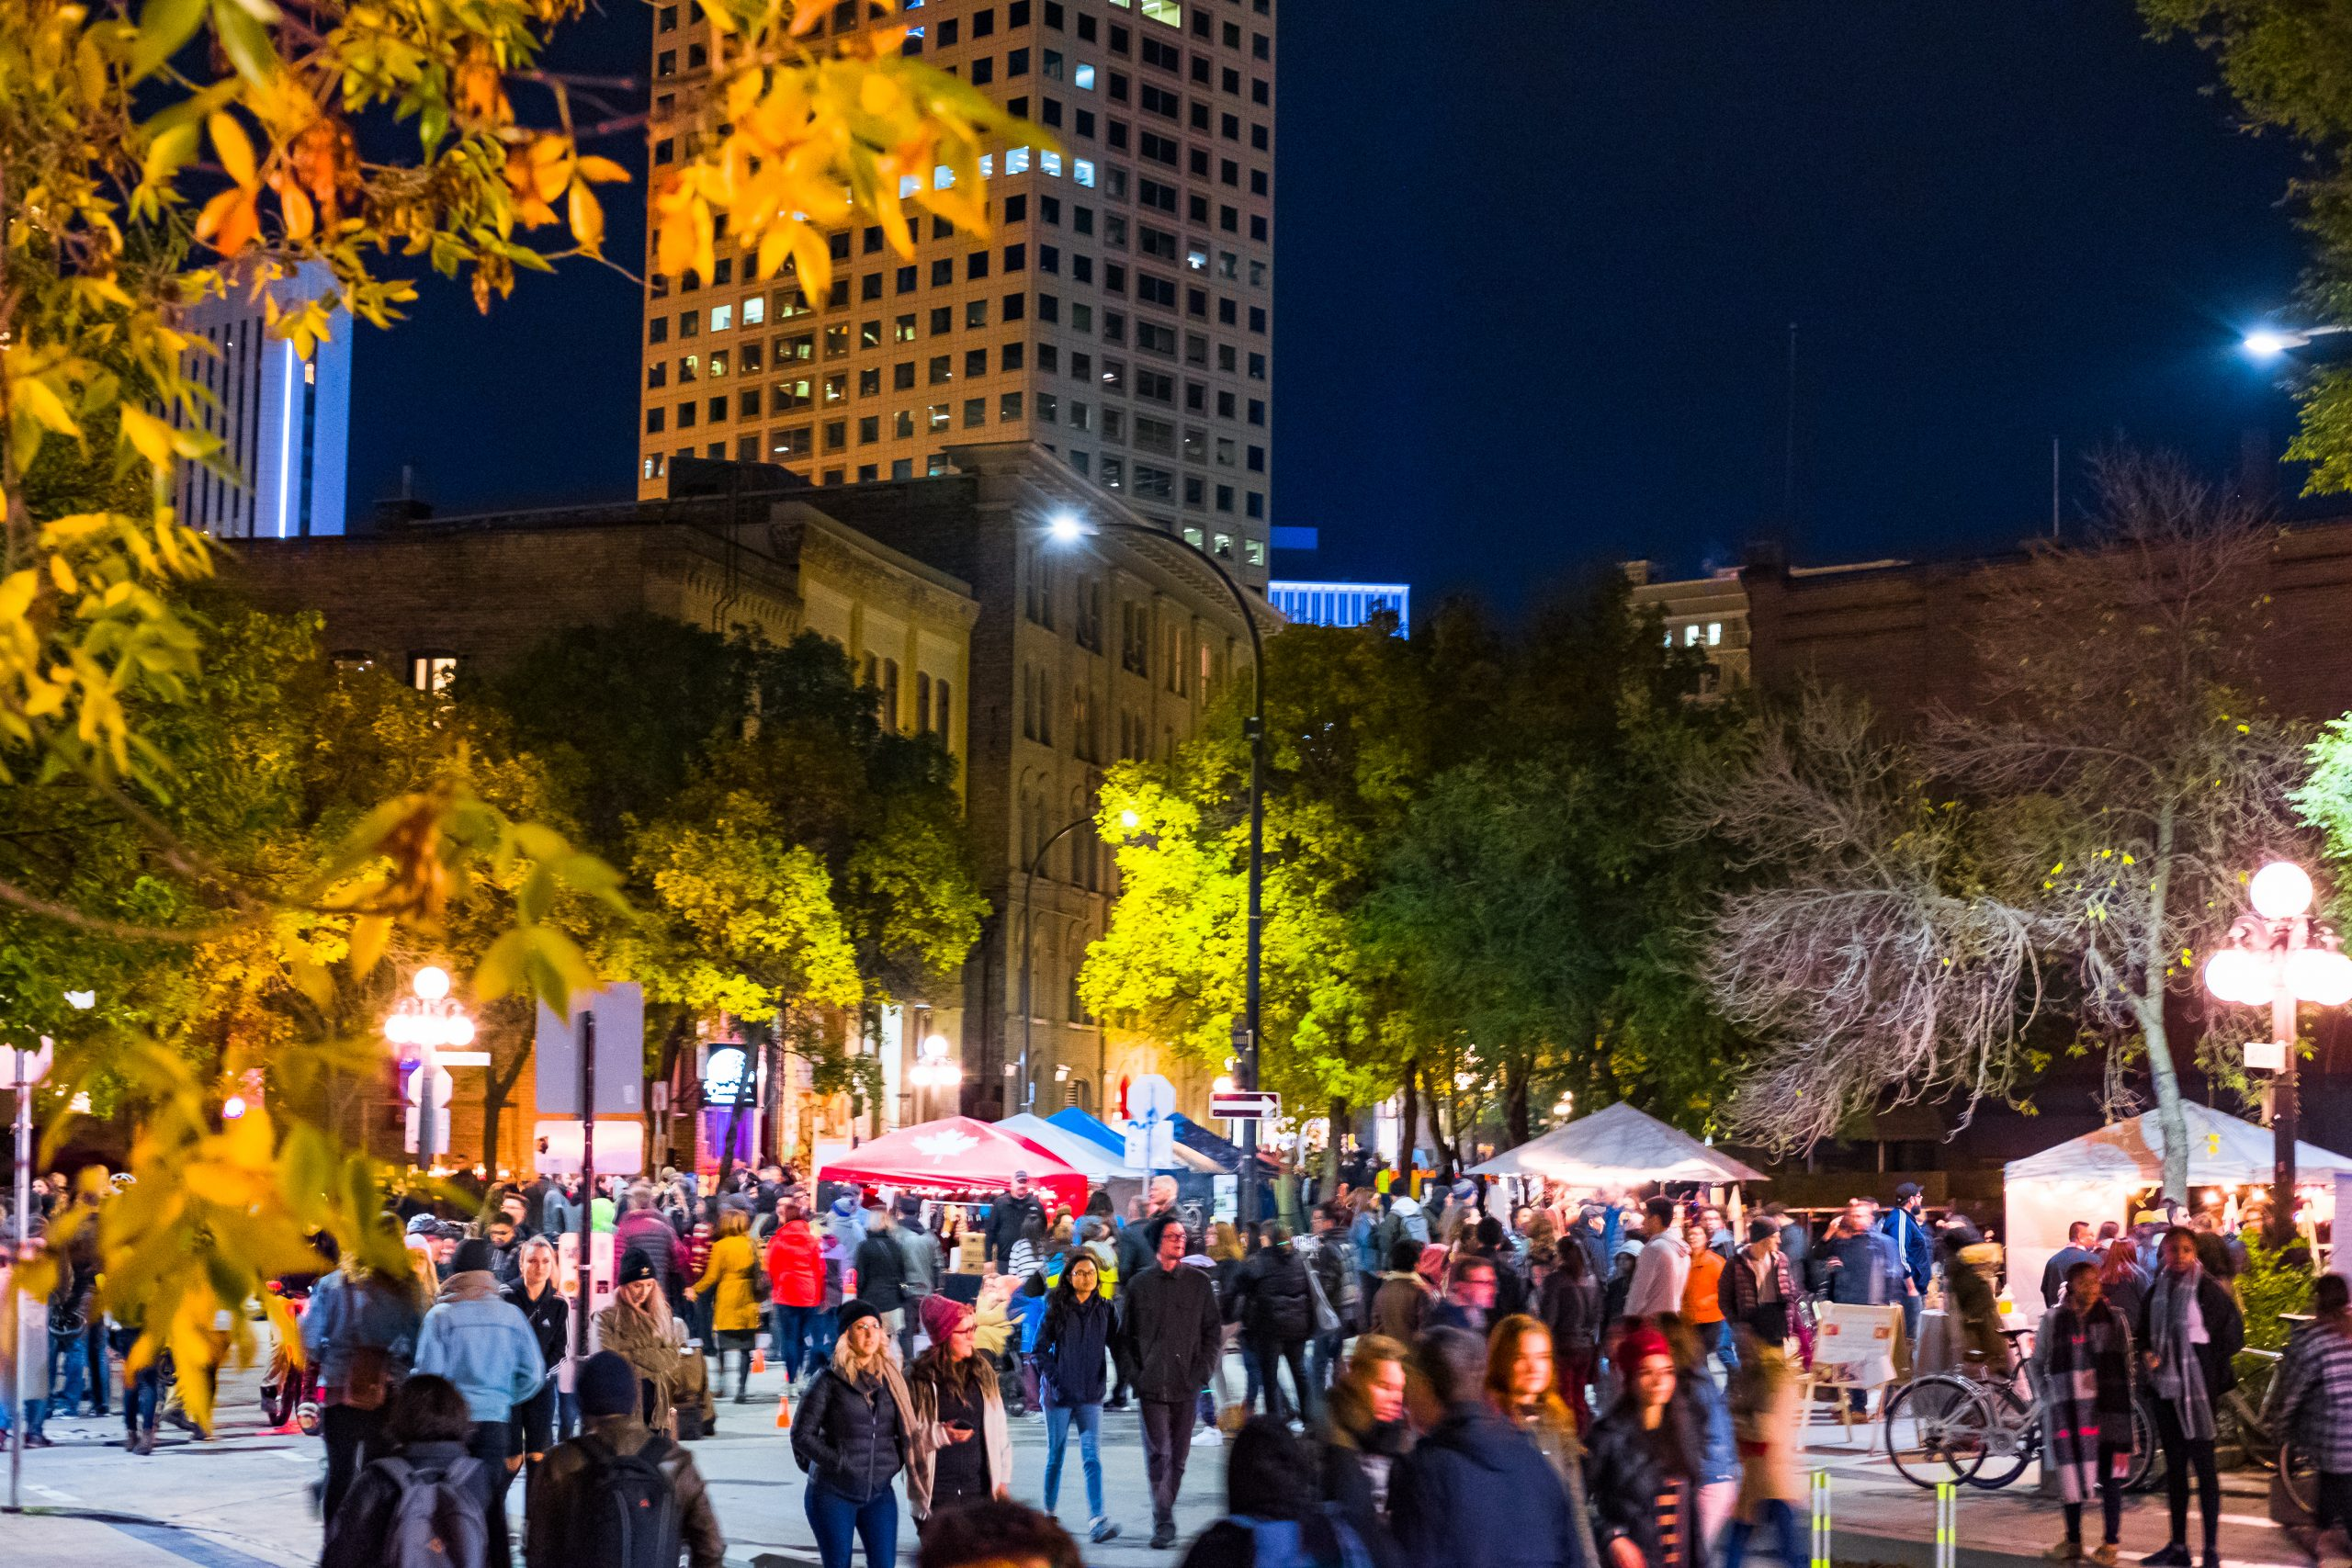 Old Market Square - Nuit Blanche 2019